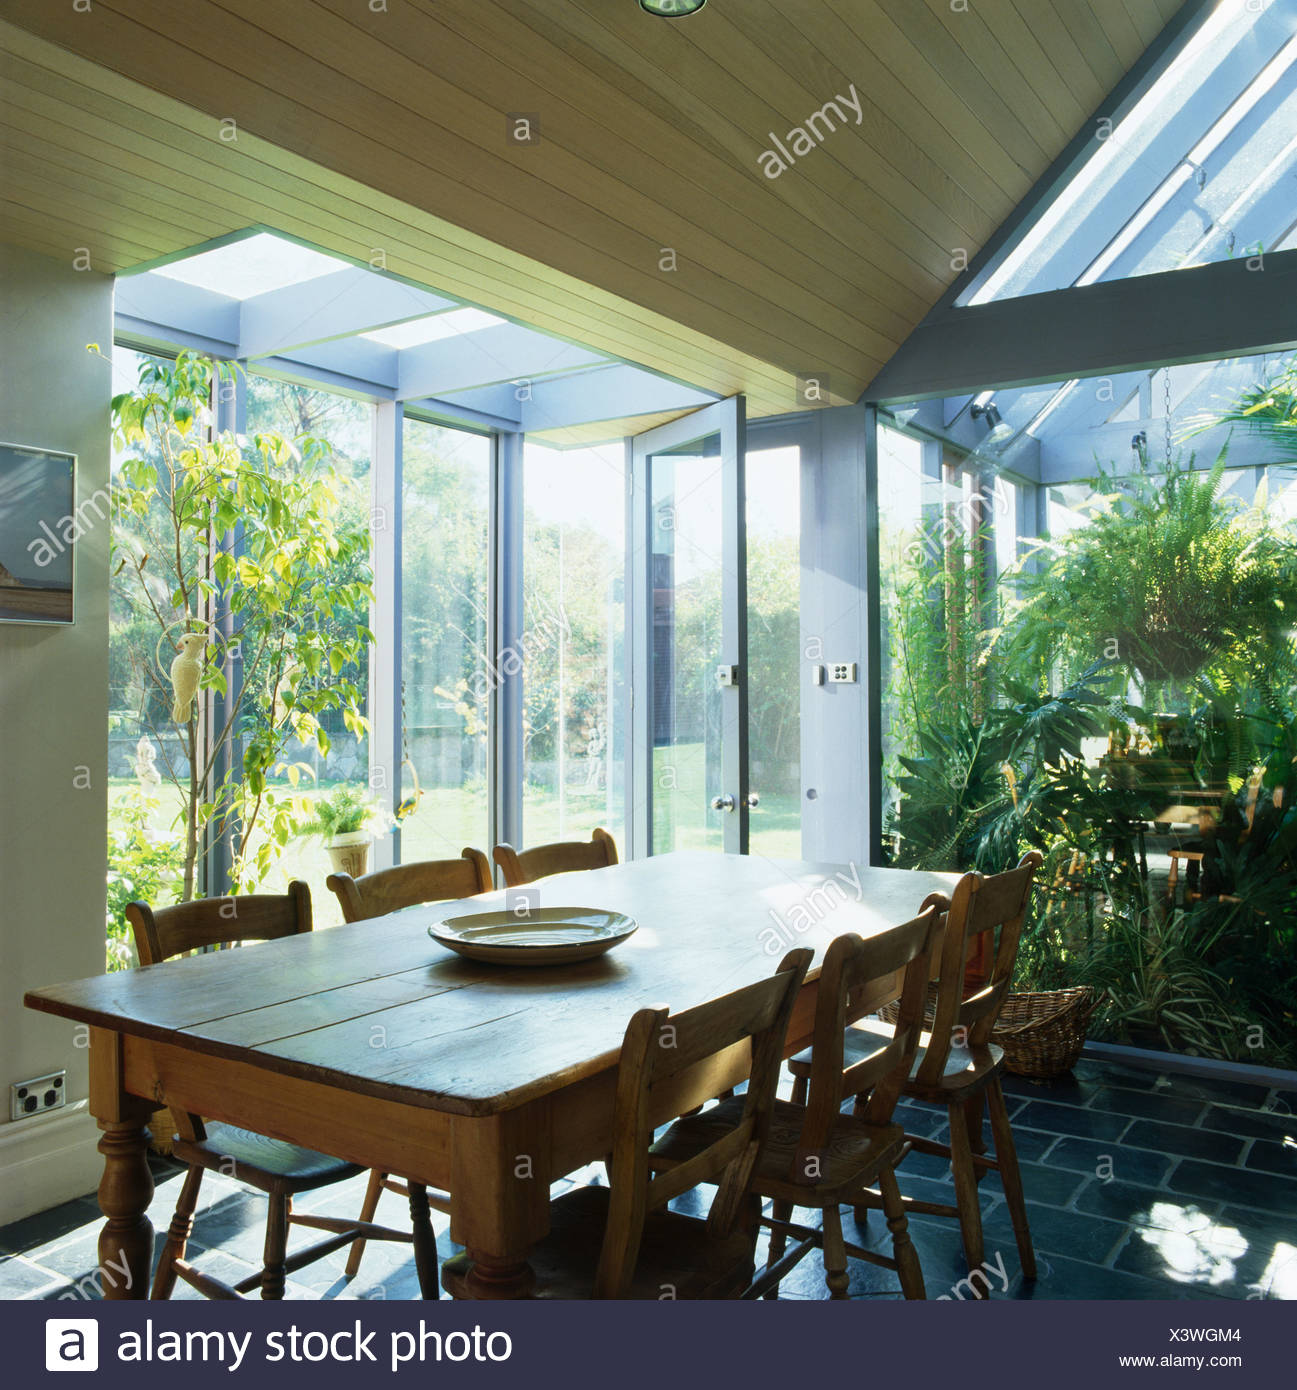 Old Pine Table And Chairs In Modern Dining Room Extension With Glass Doors Tall Houseplants